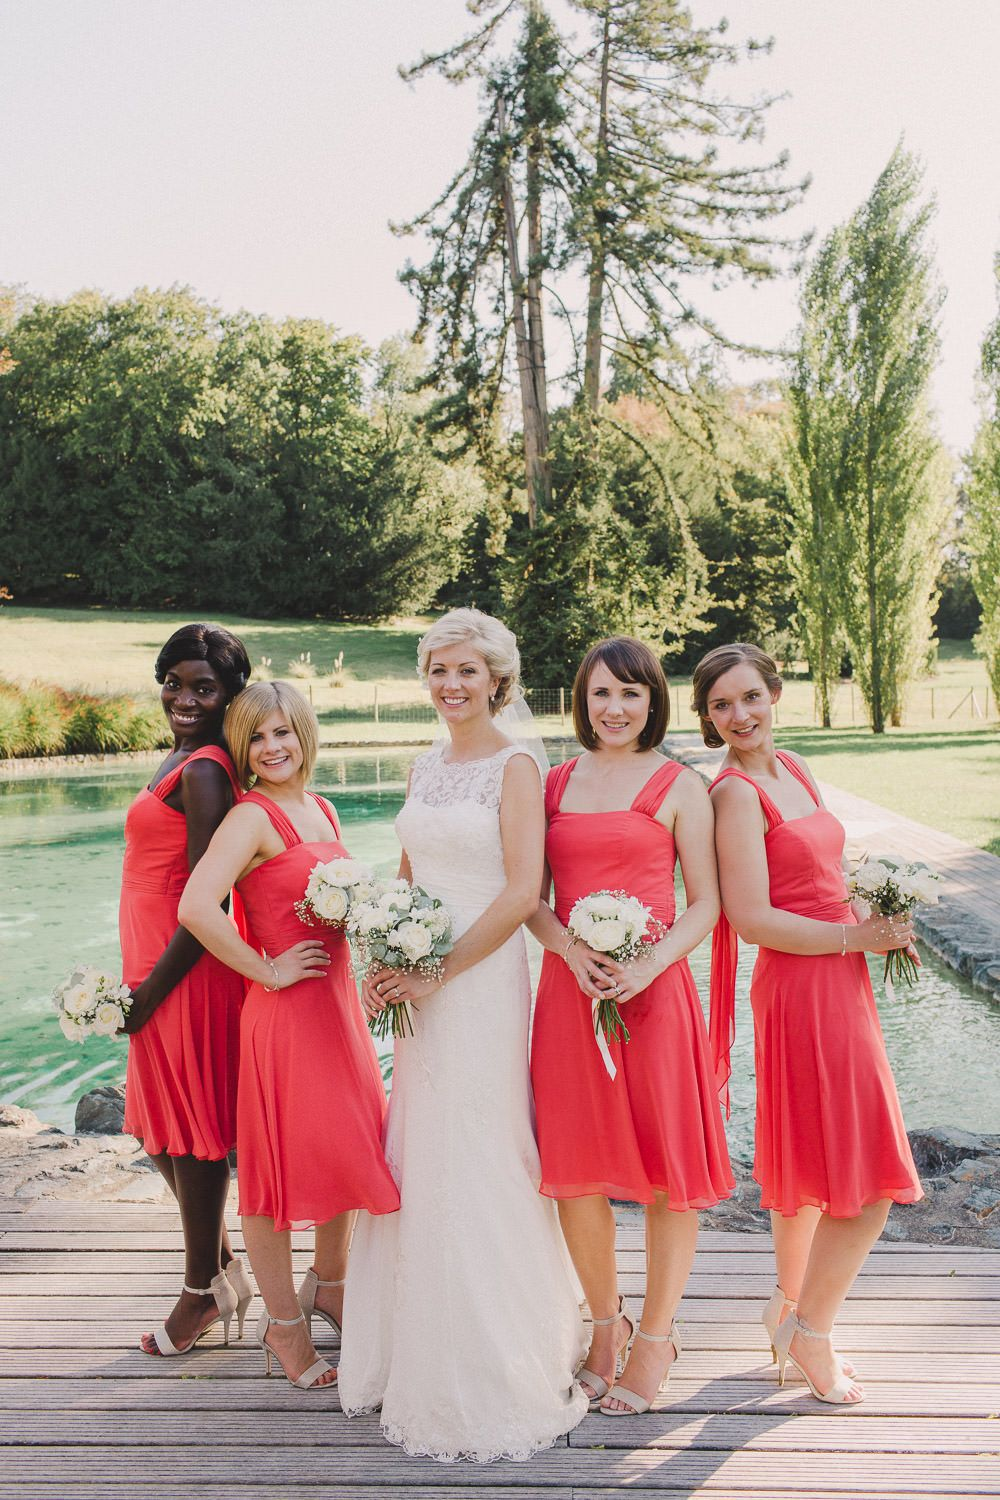 Wedding gown with red accents  A destination wedding in the Dordogne with lace wedding gown and